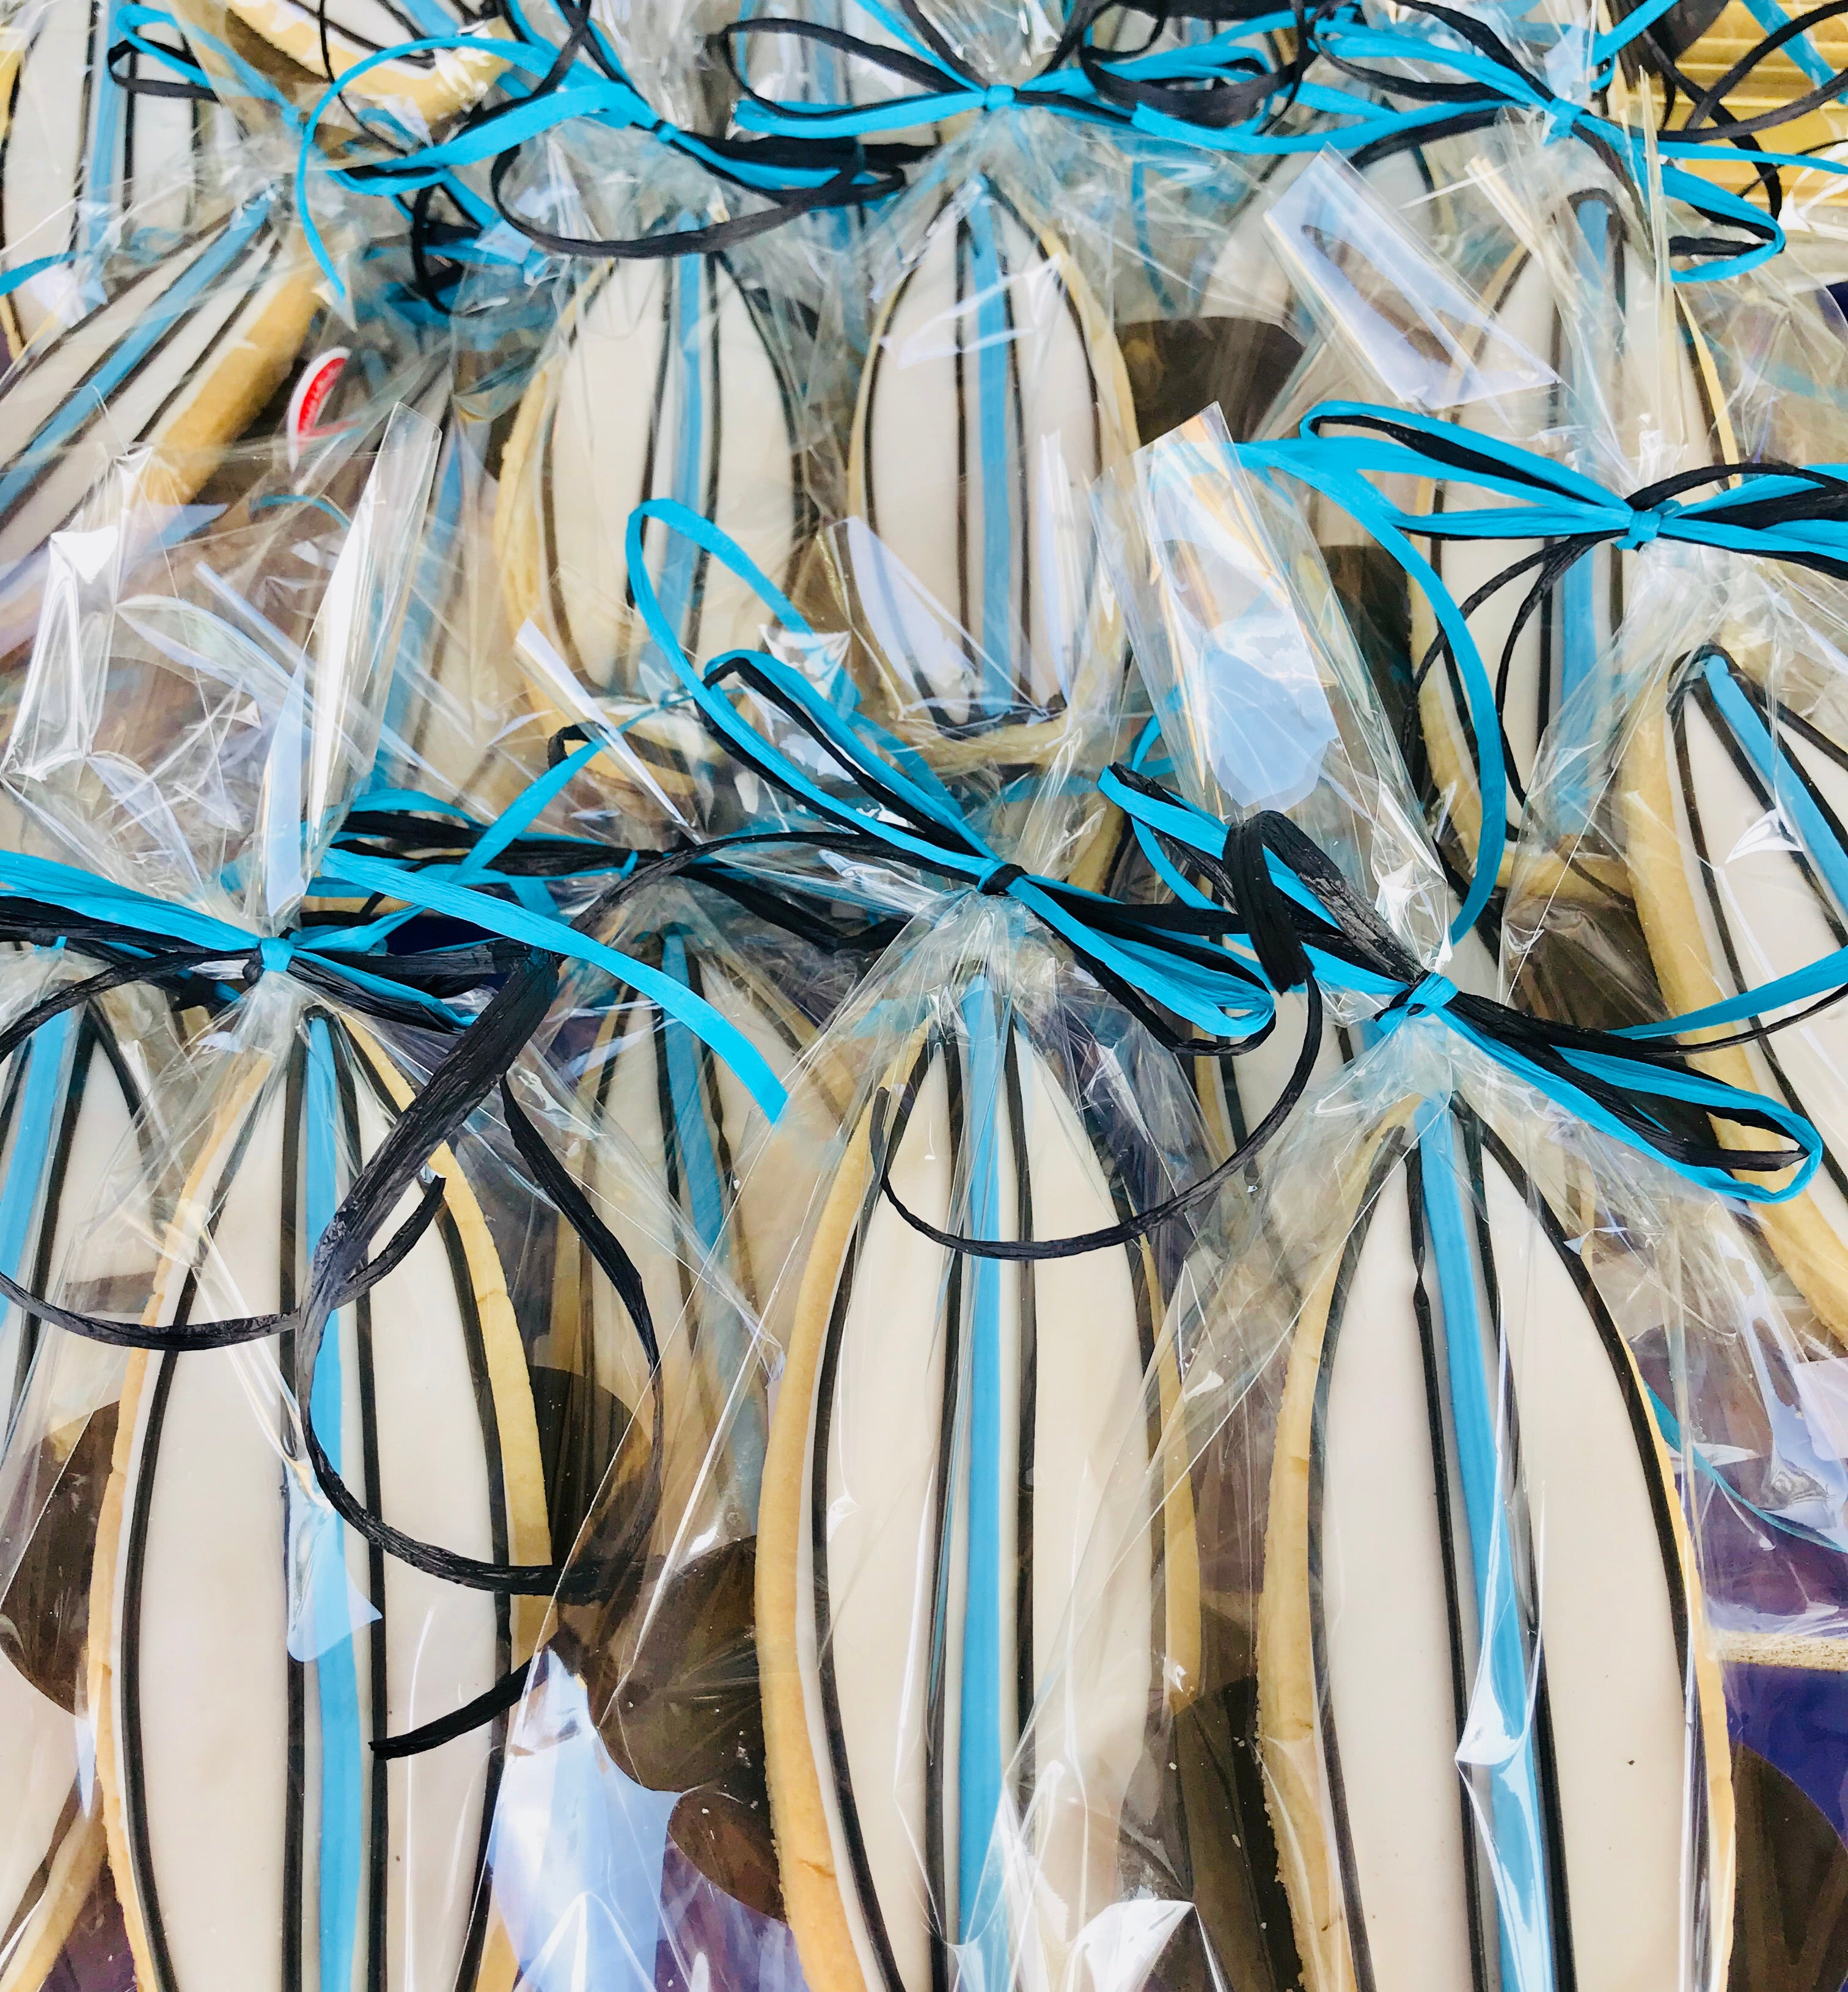 COOKIE FAVORS SPORTS/SURFBOARDS